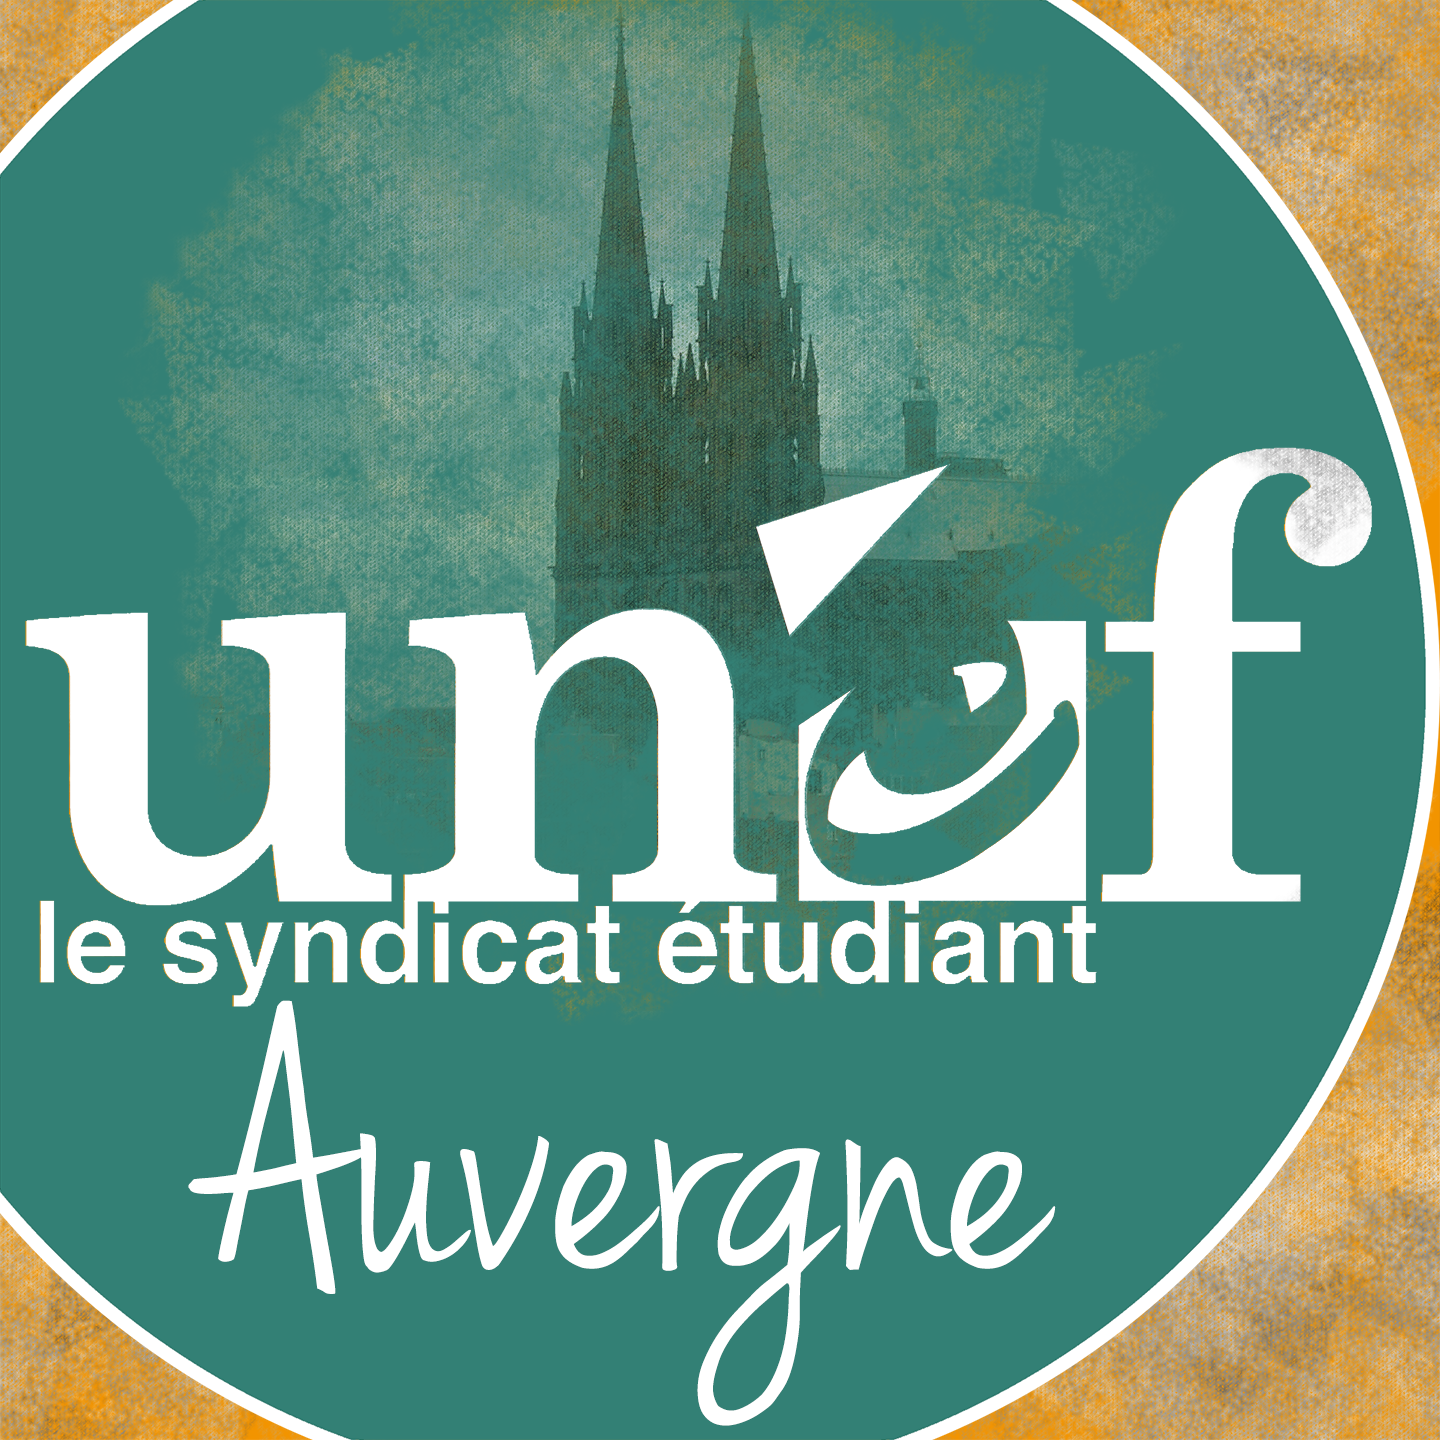 Association - UNEF Auvergne